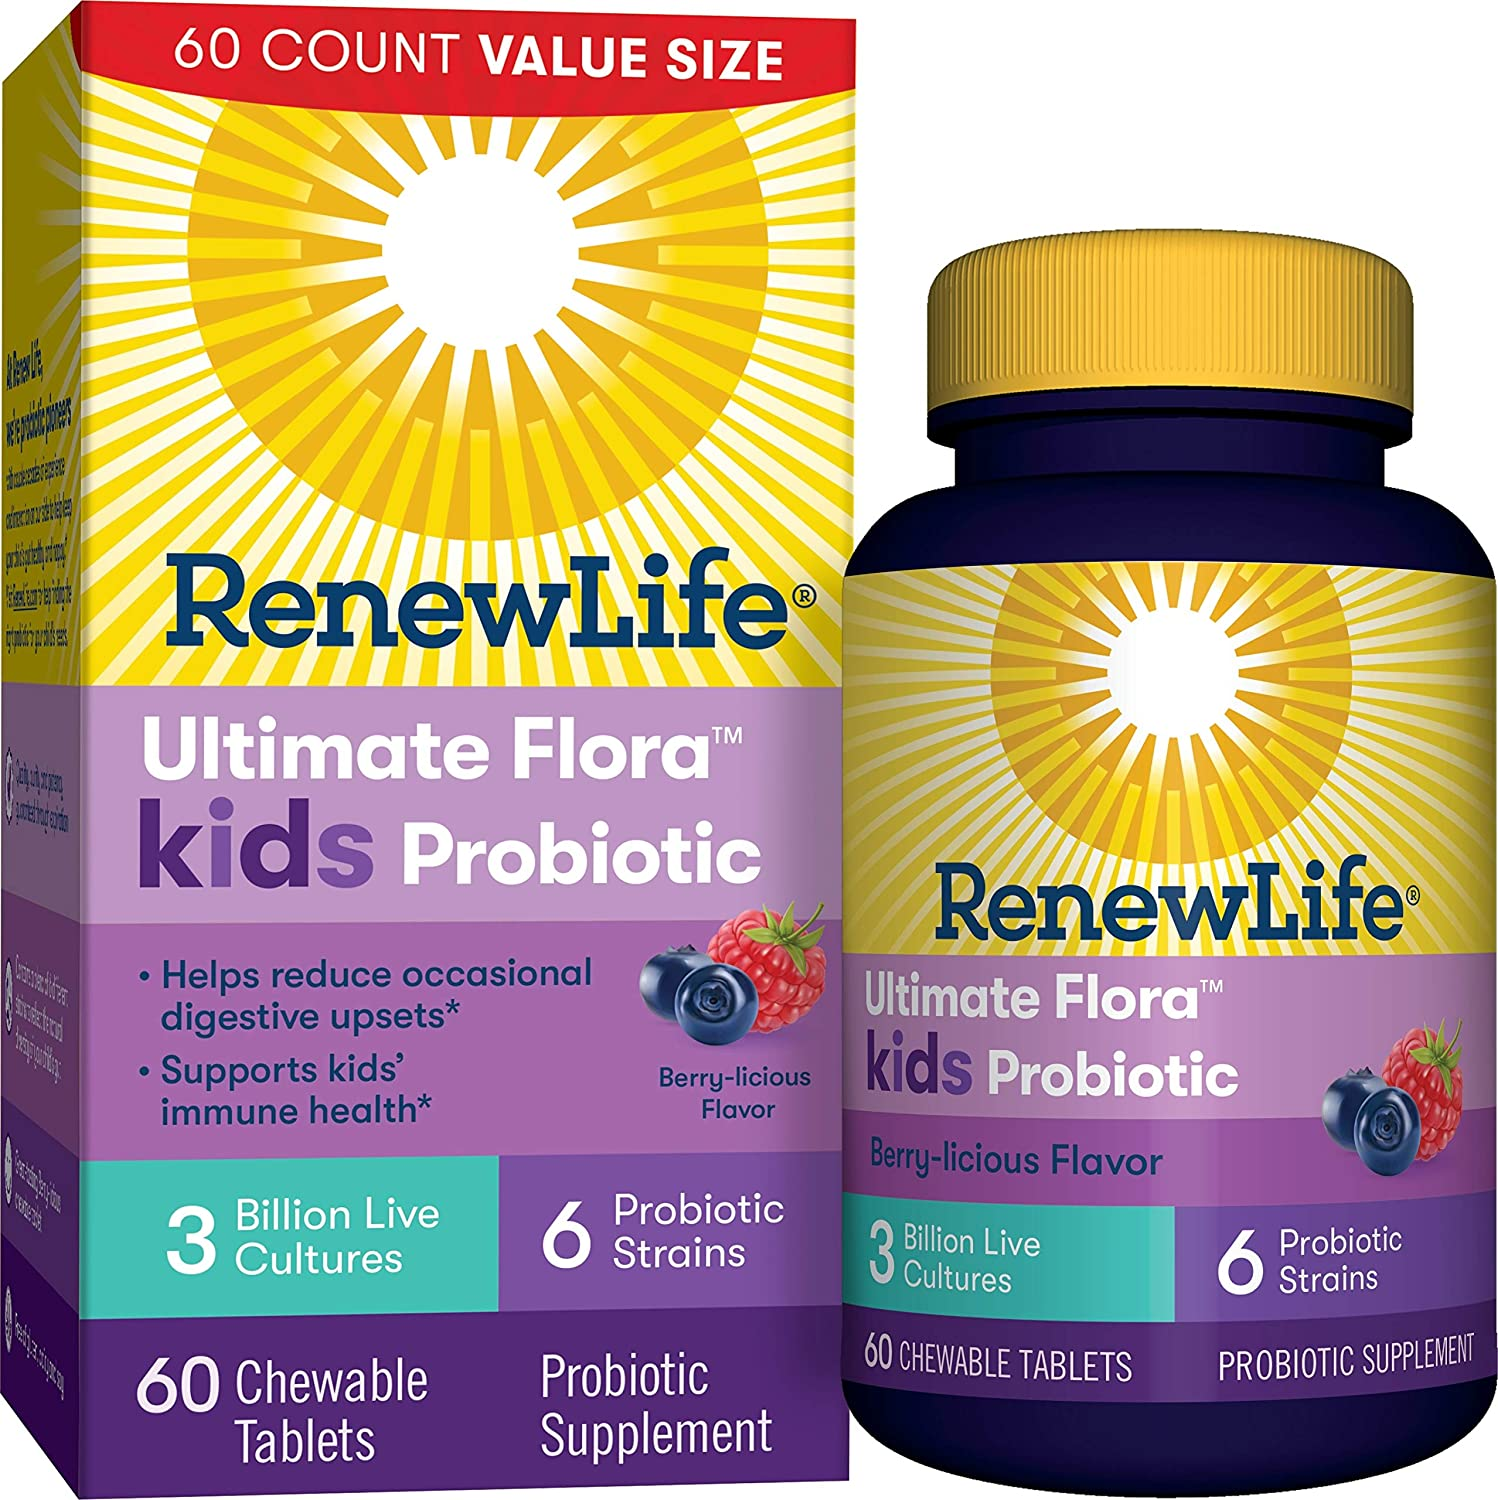 Renew Life Kids Probiotic - Ultimate Flora Kids Probiotic Supplement - Shelf Stable, Gluten, Dairy & Soy Free - 3 Billion CFU - Berry-licious, 60 Chewable Tablets (Packaging May Vary)